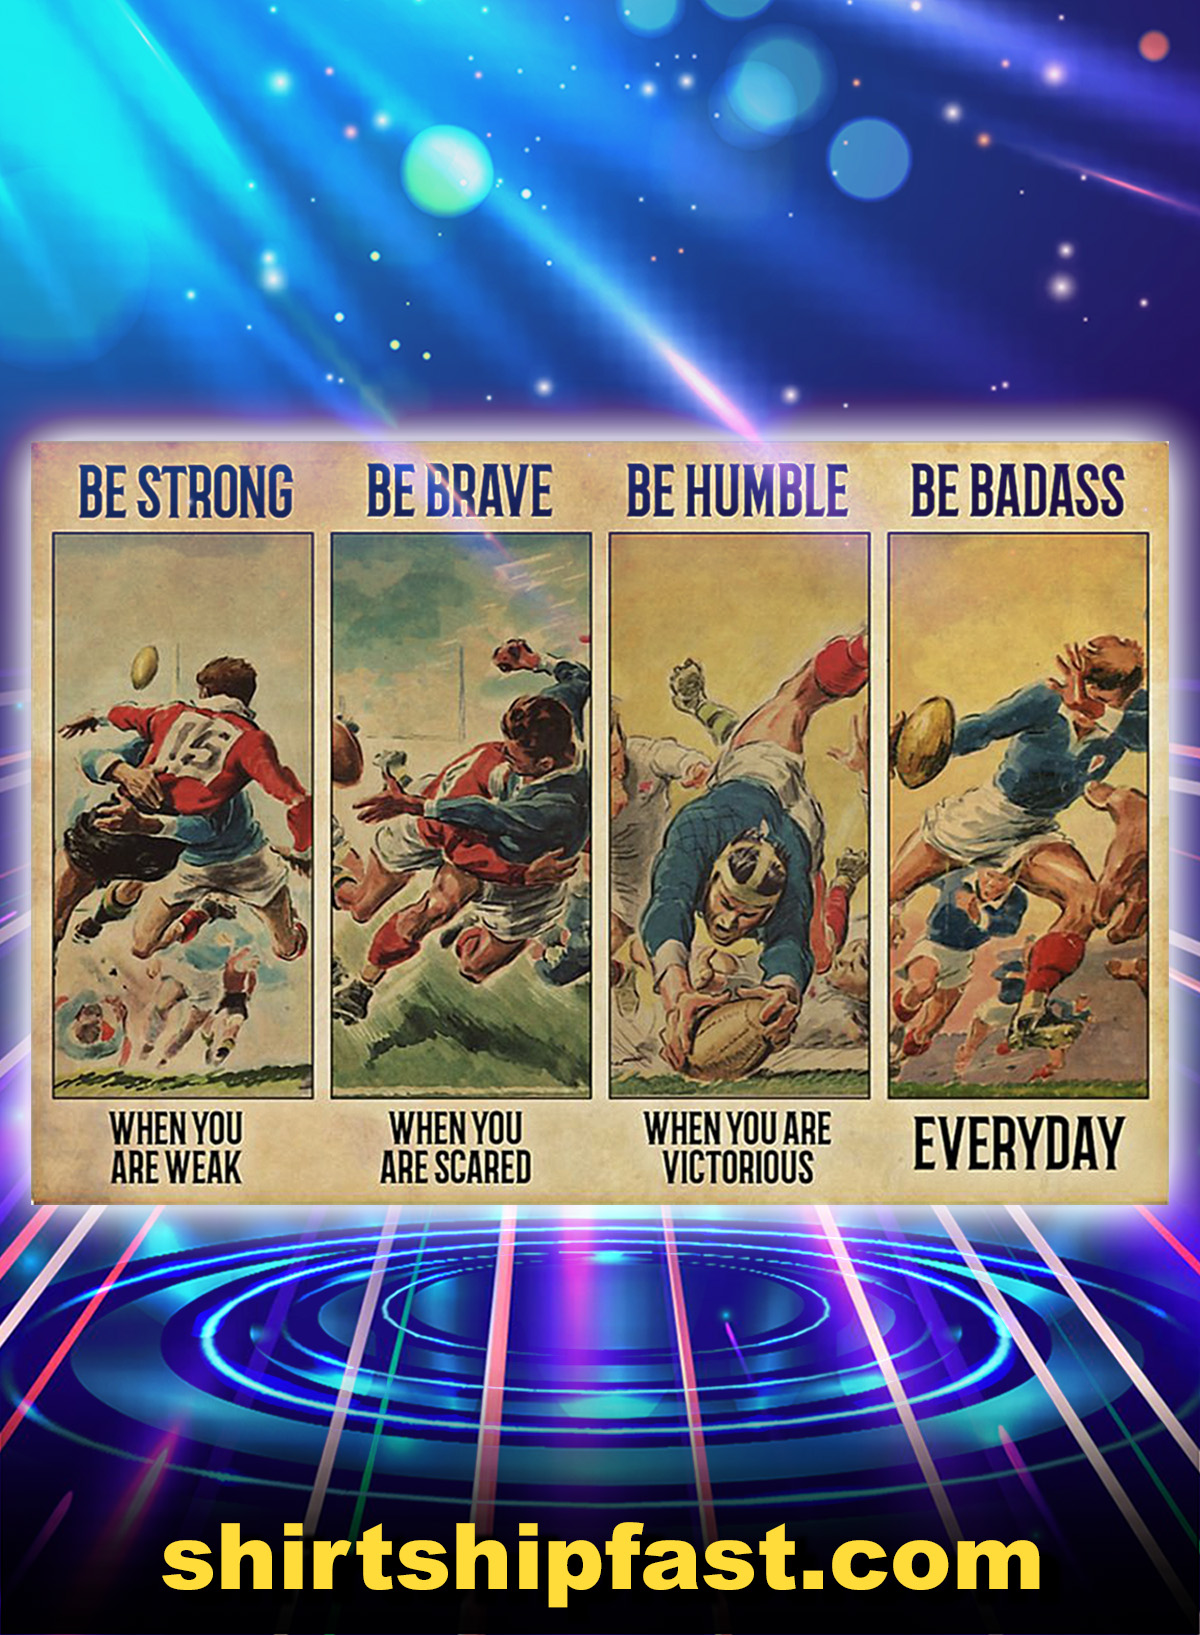 Be strong be brave be humble be badass Rugby poster - A1